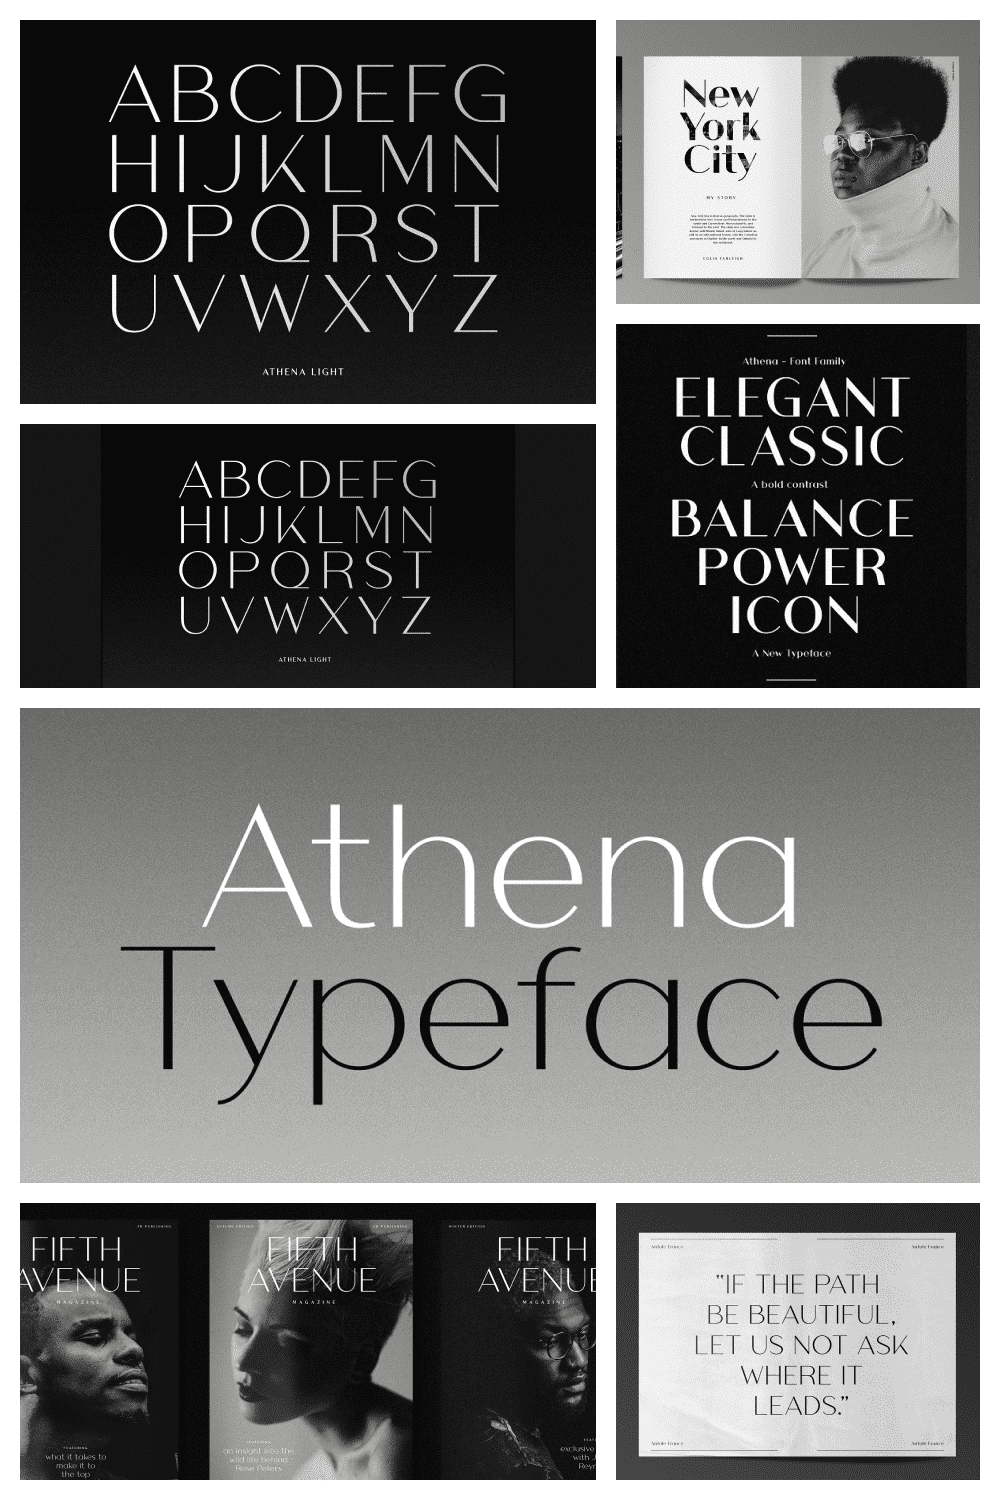 This is a modern take of the old didone genre, confidently playing with extremes of thick strokes and whisper thin curves, but removing the serifs, planting it firmly in modern day design.